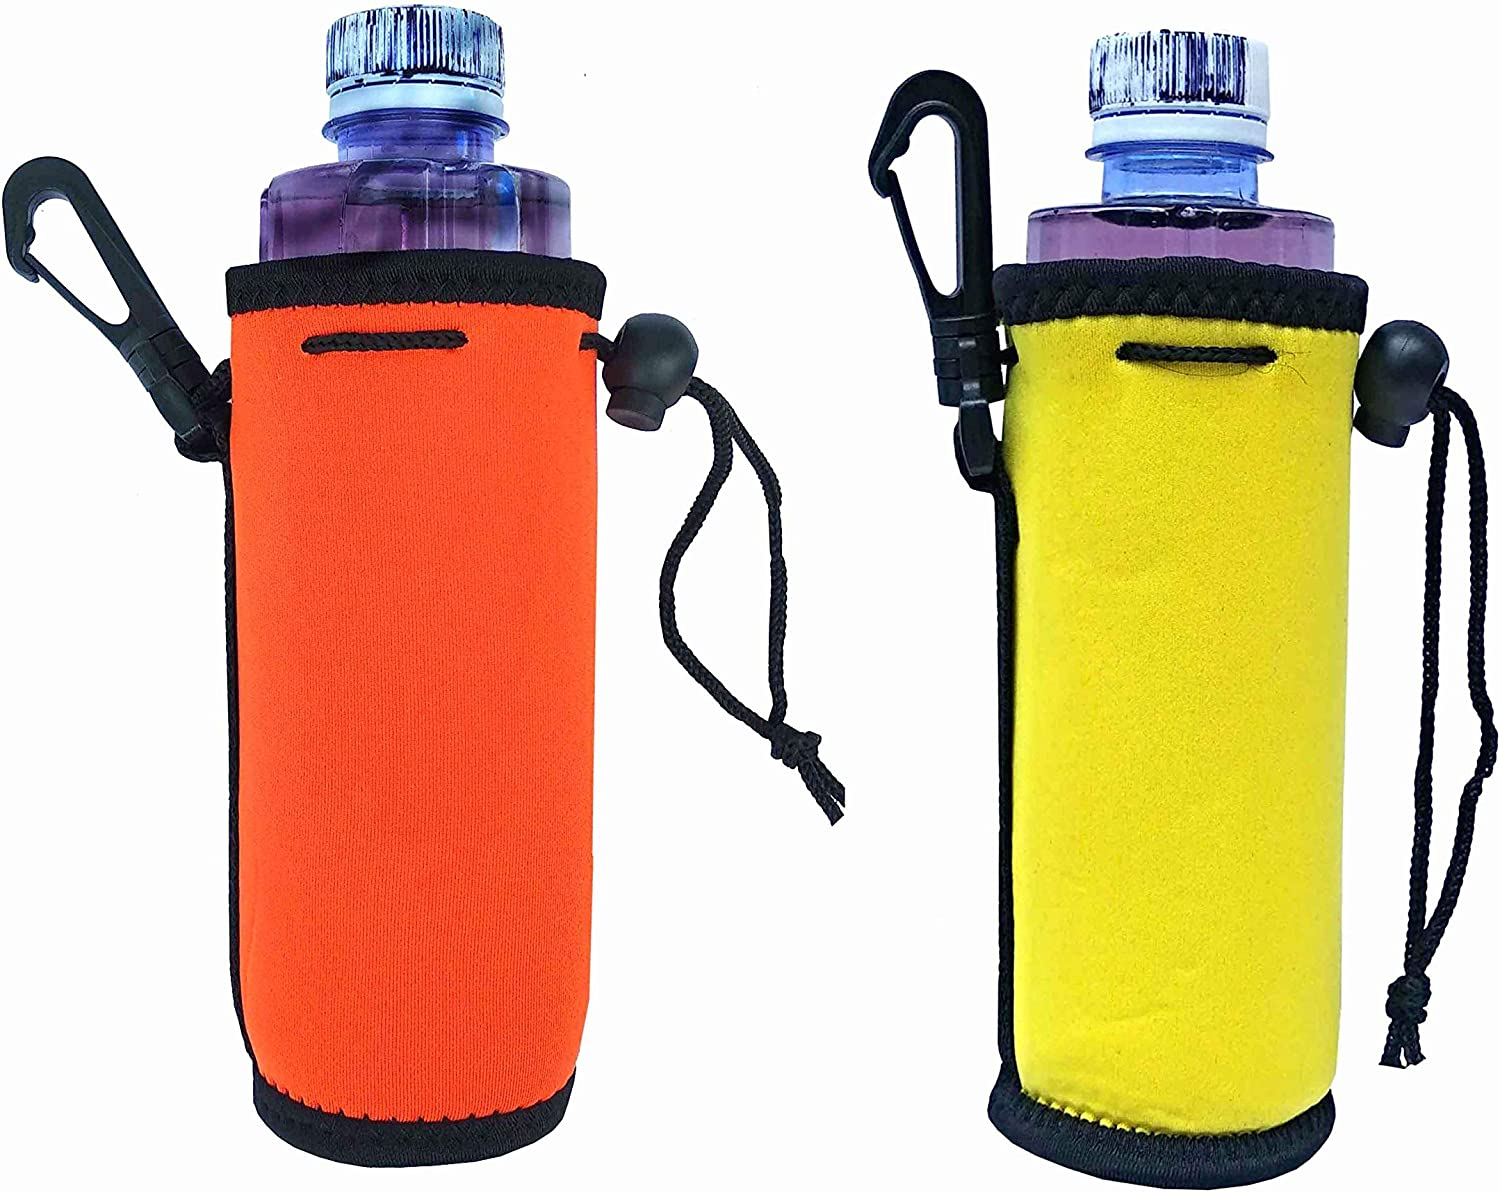 2 Pack 16.9 OZ Collapsible Neoprene Water Bottle Drawstring Coozies Coozy Carrier Tote Bag Pouch Cooler Coolie Cover Insulator Hugger Huggie Holder Sleeve - (Yellow+Orange)